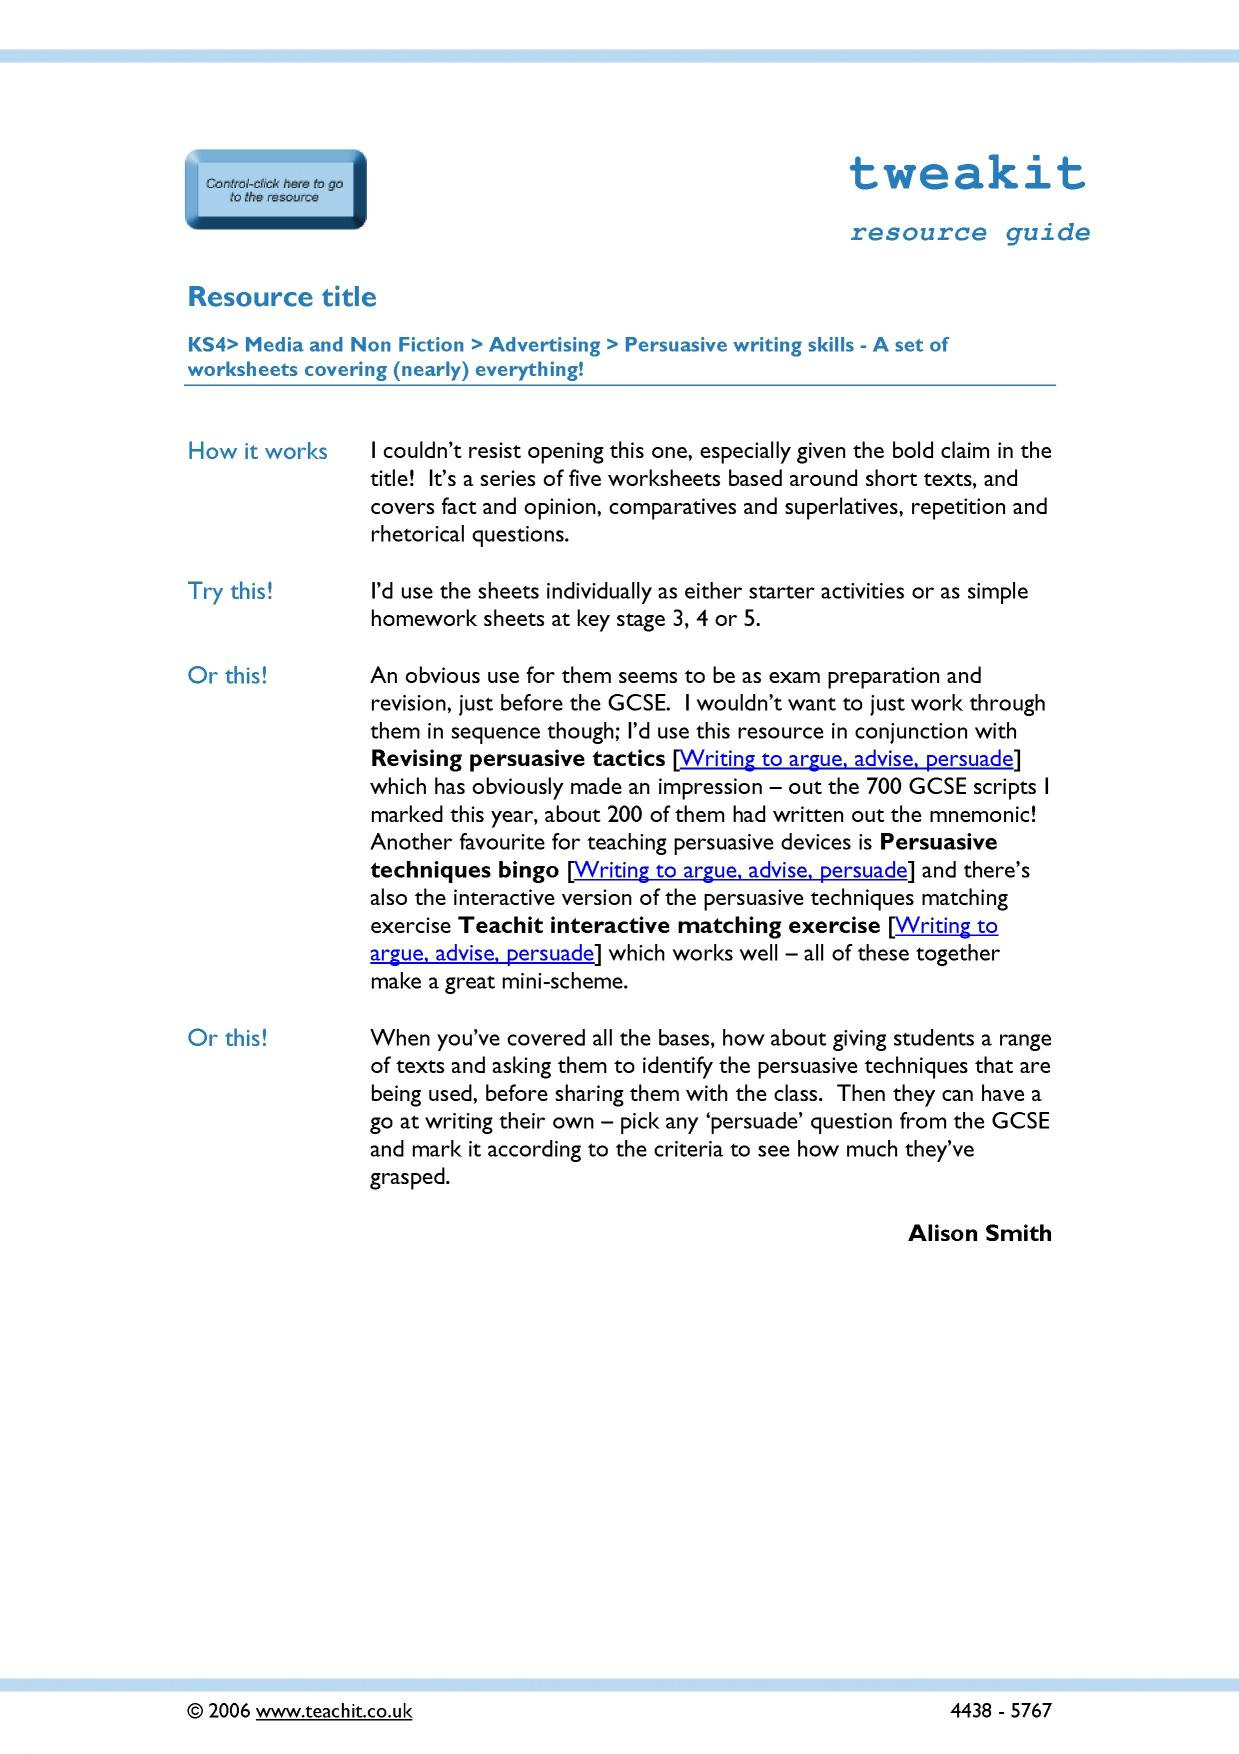 Persuasive Writing Skills A Set Of Worksheets Covering